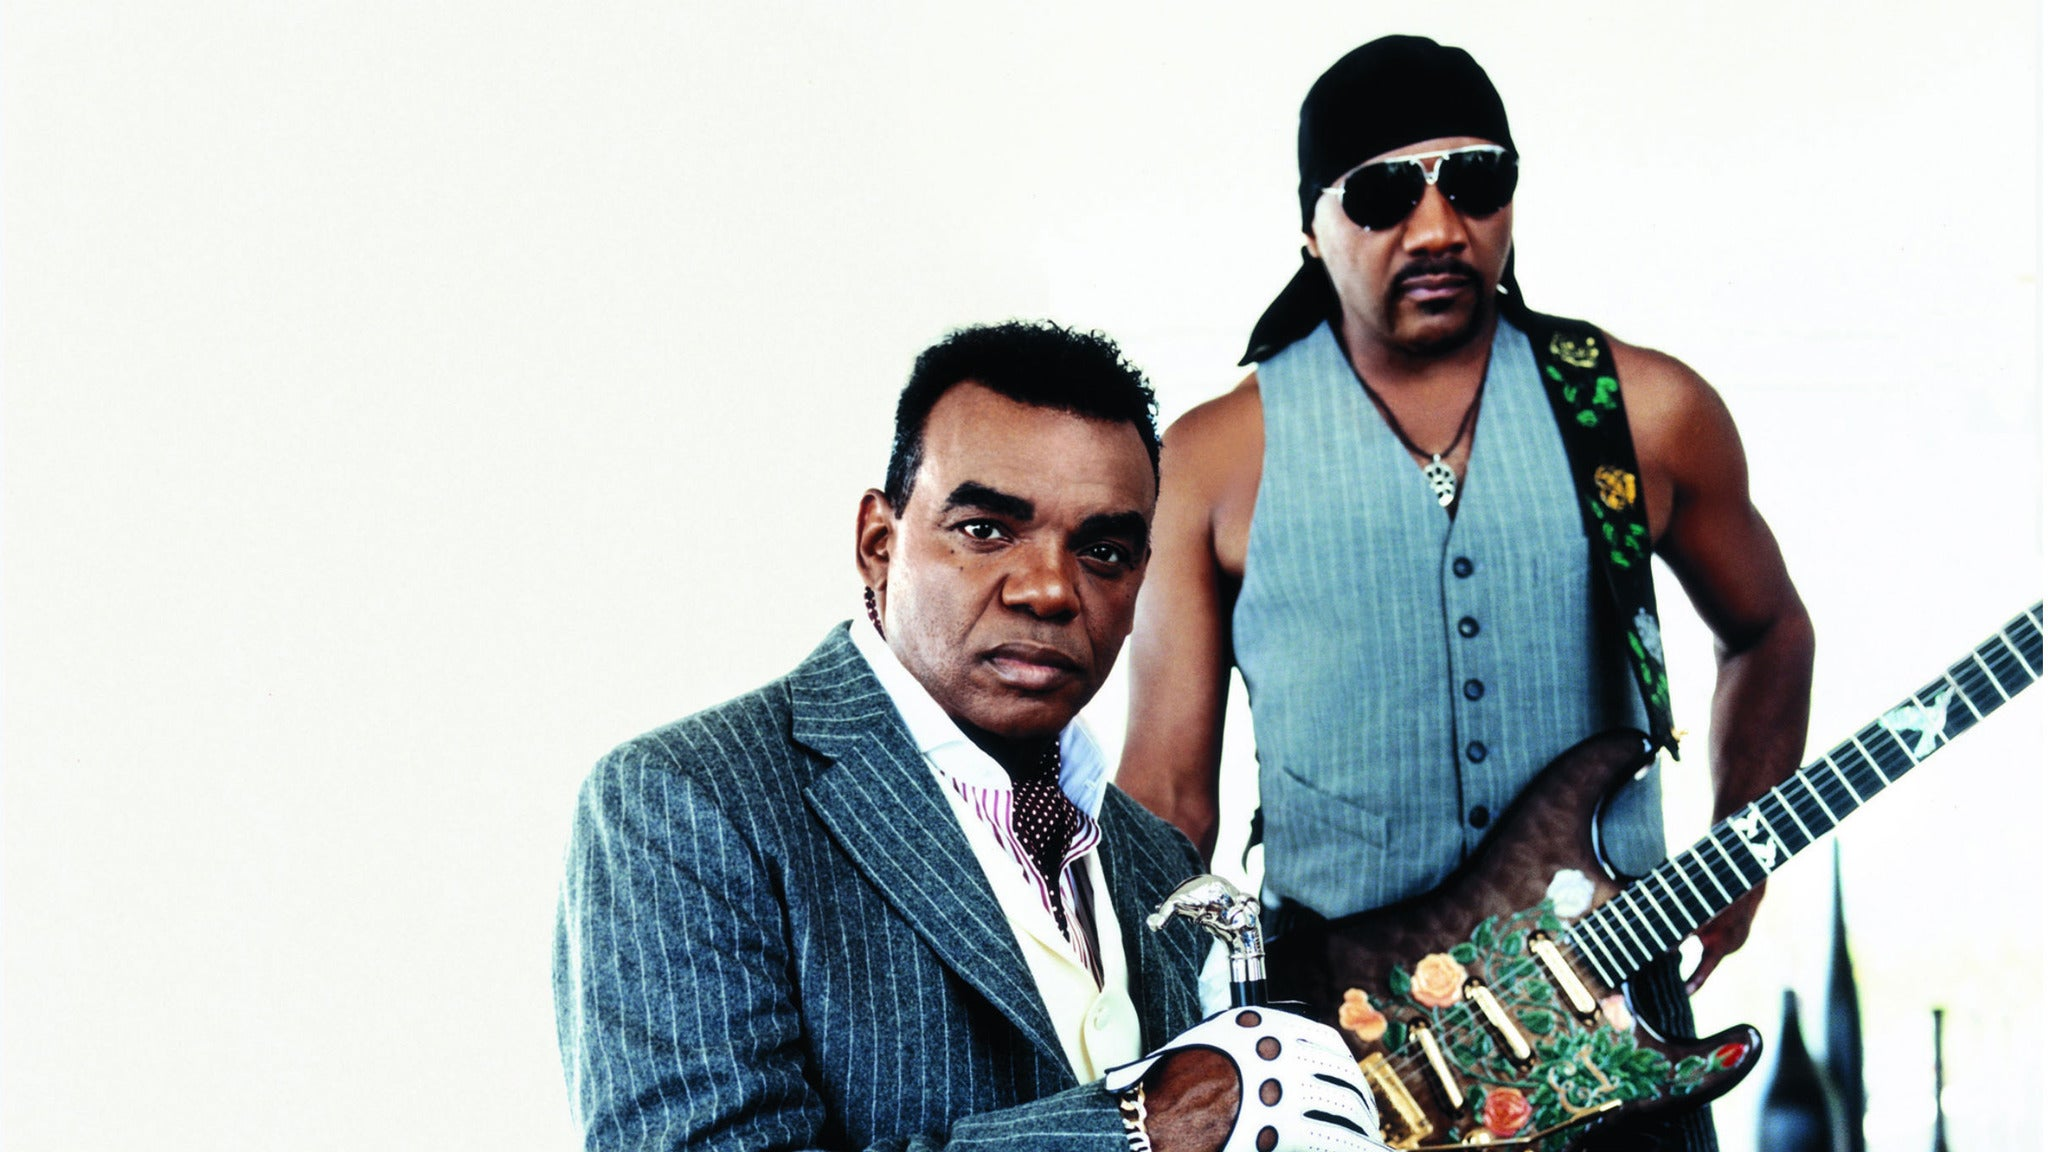 Isley Brothers at The Venue at Horseshoe Casino